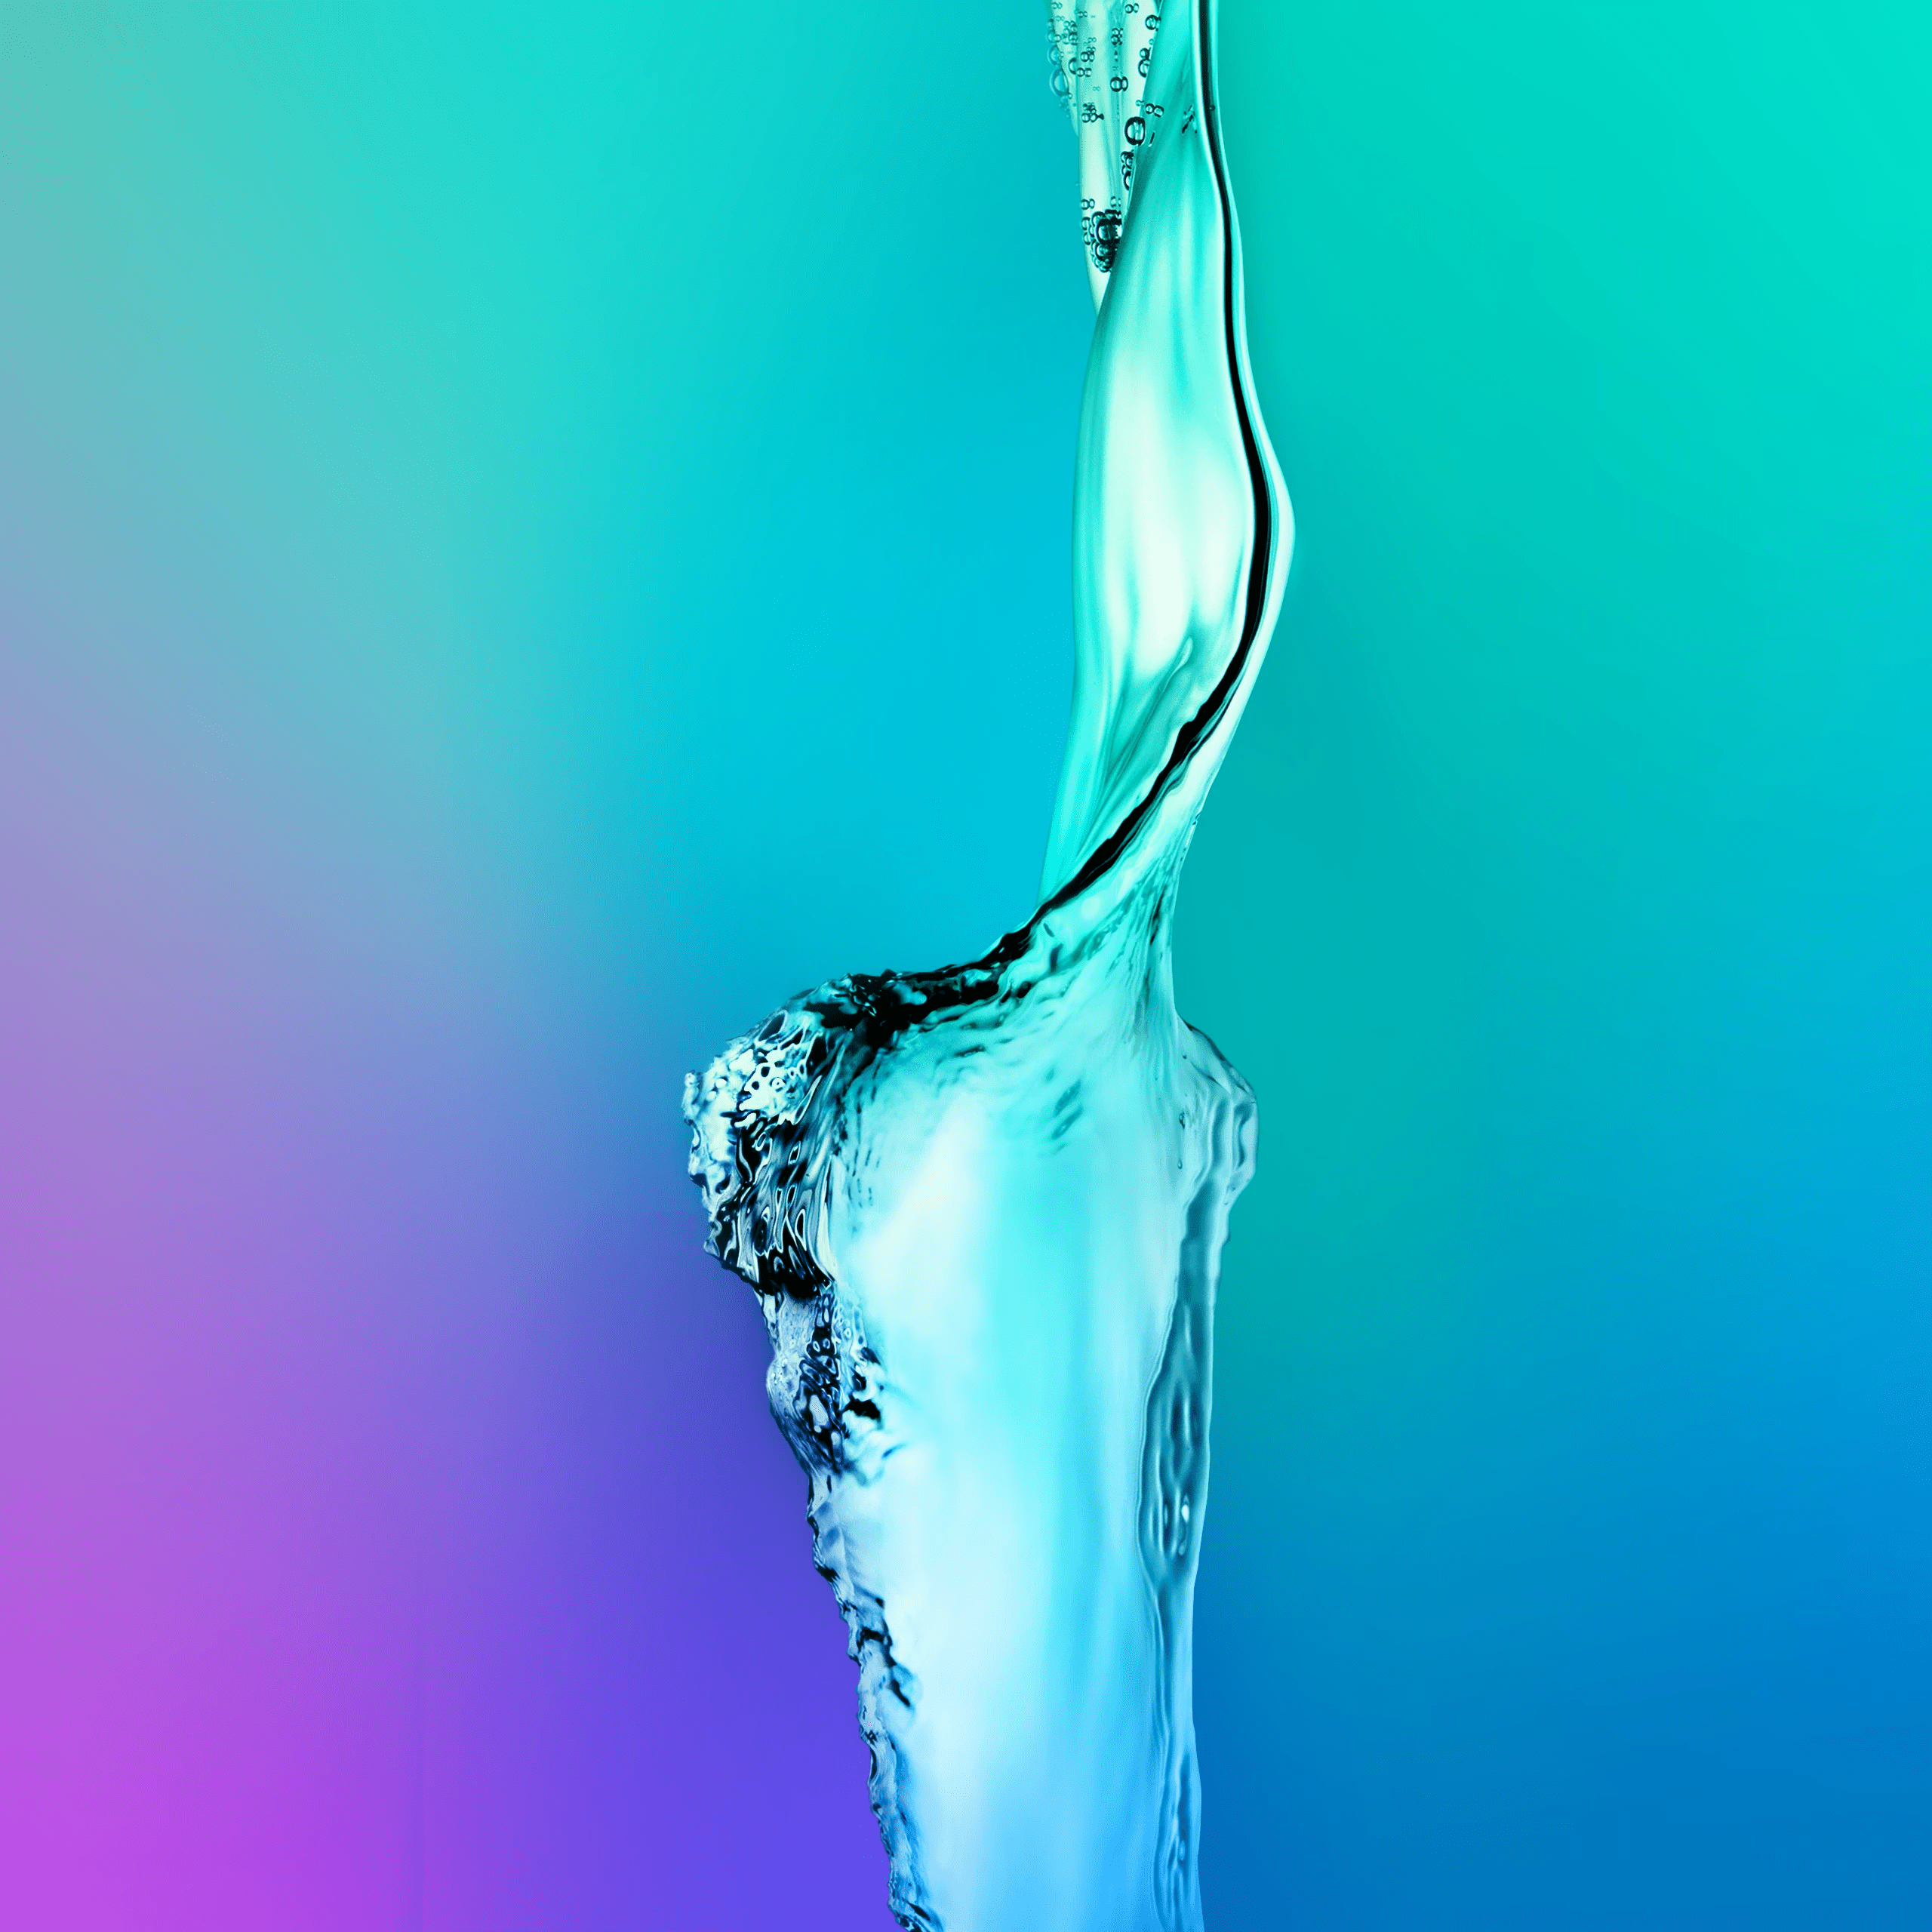 Download Galaxy Note 5 S6 Edge Plus Stock Wallpapers